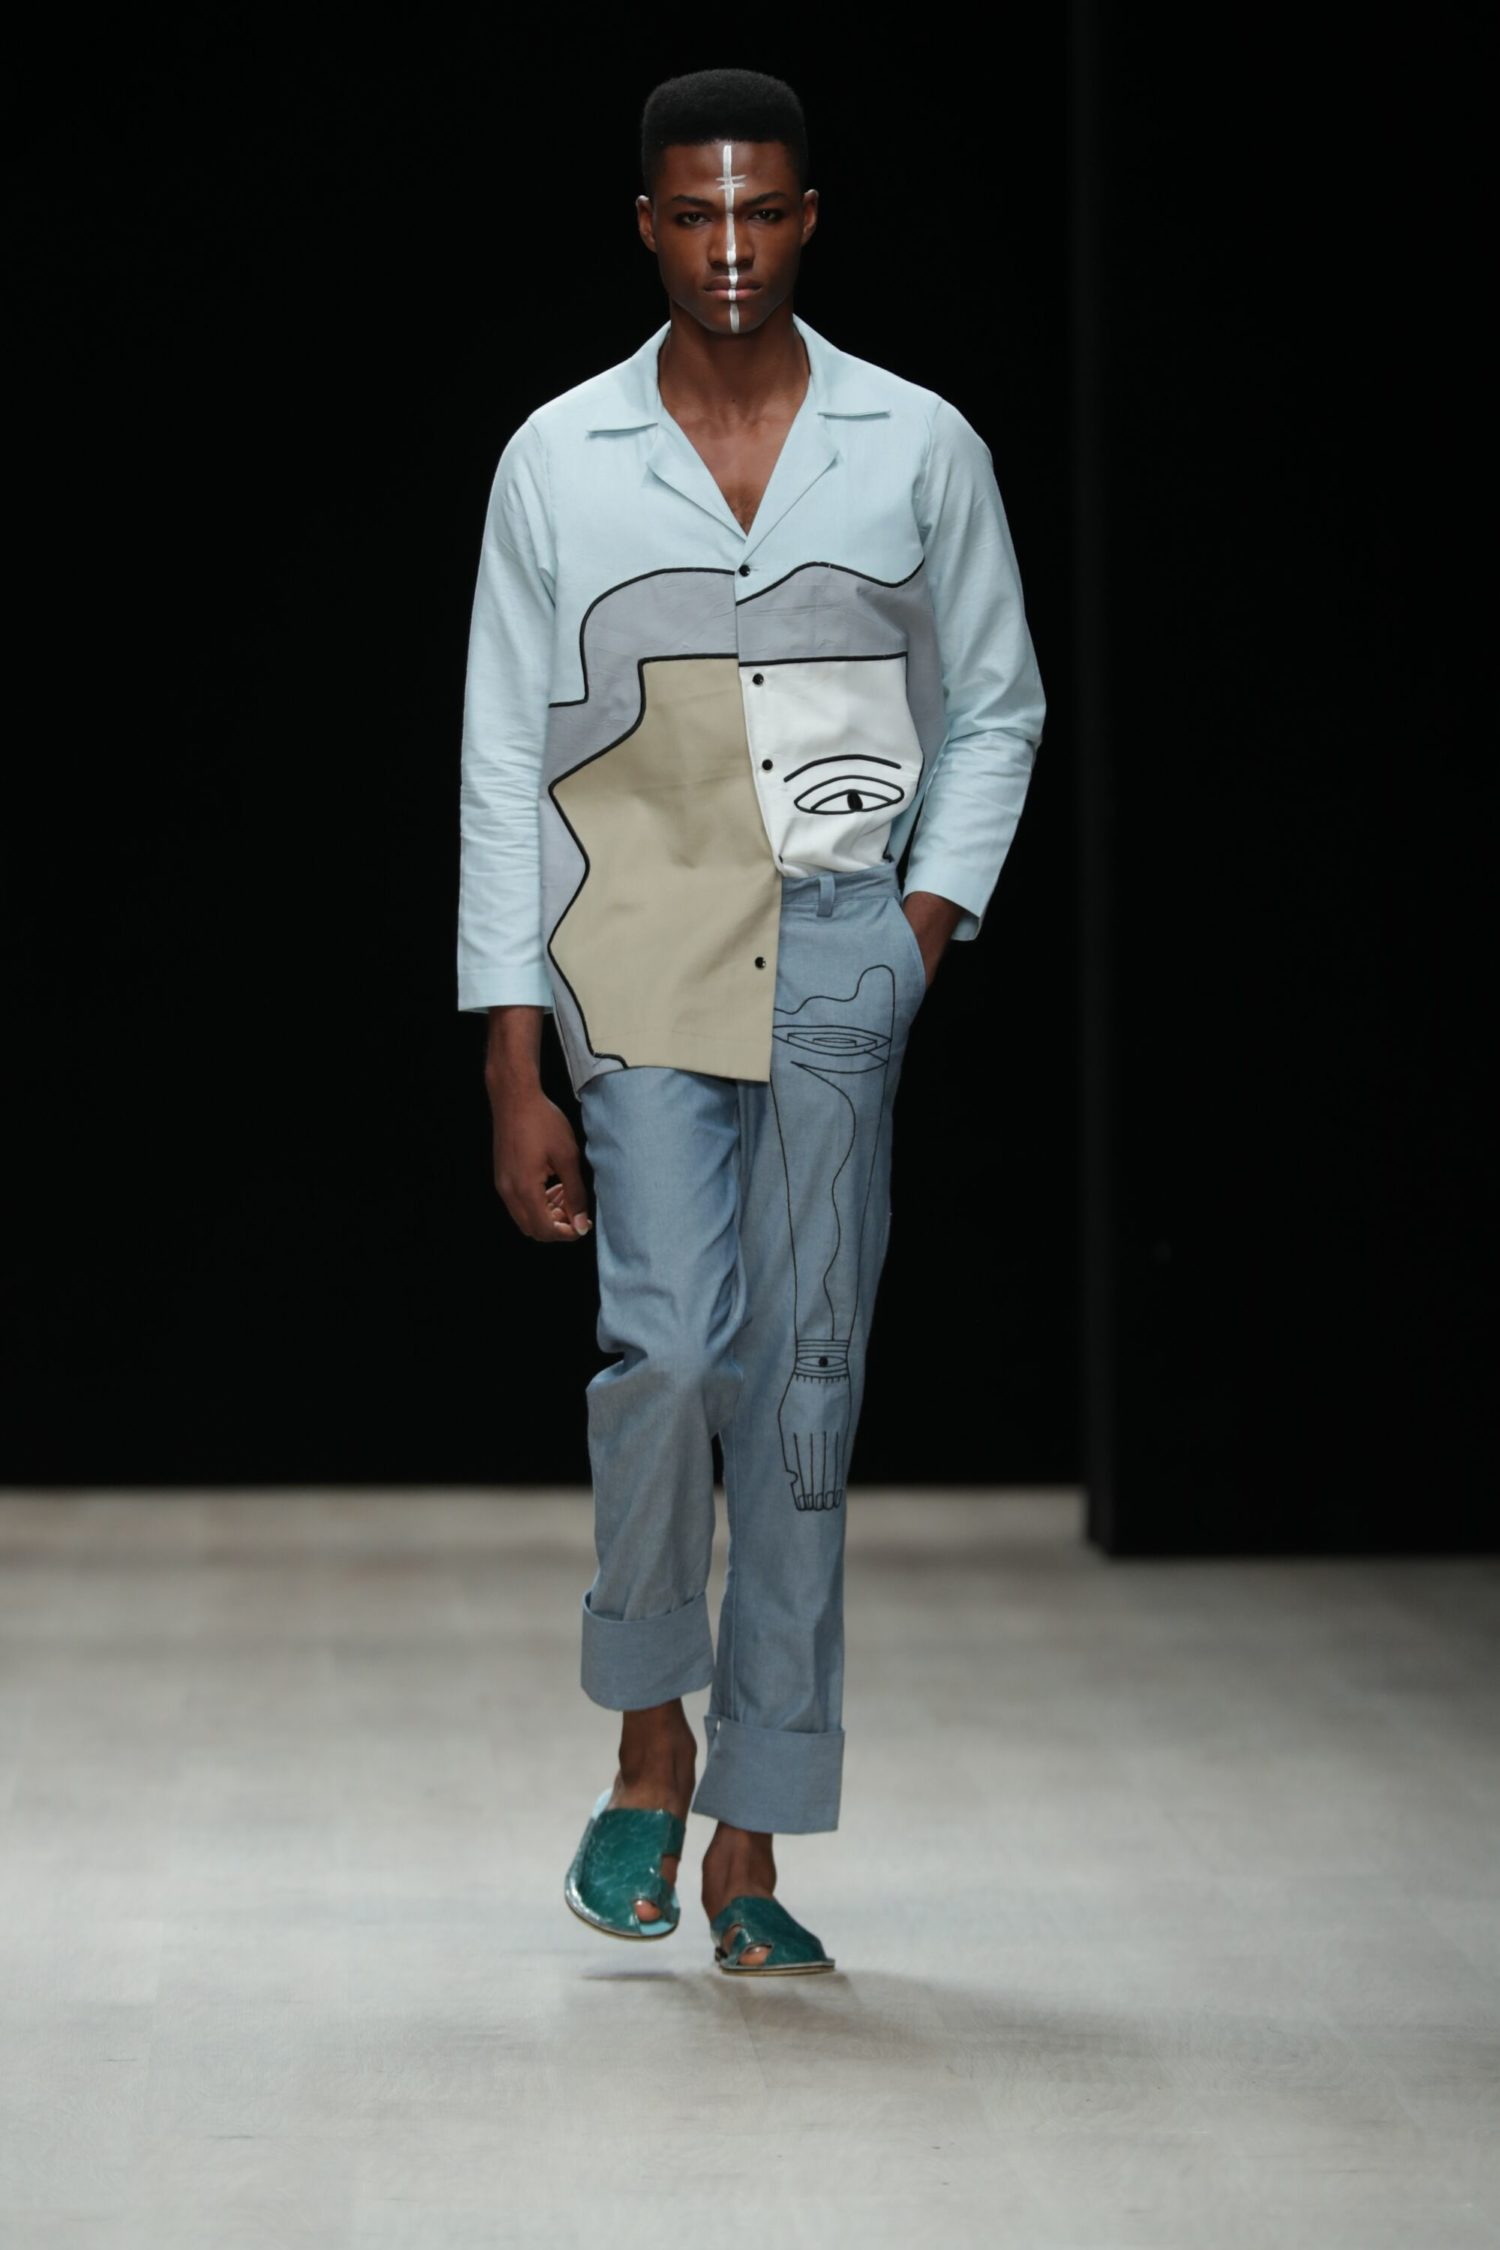 ARISE Fashion Week 2019 | WUMAN BRAND